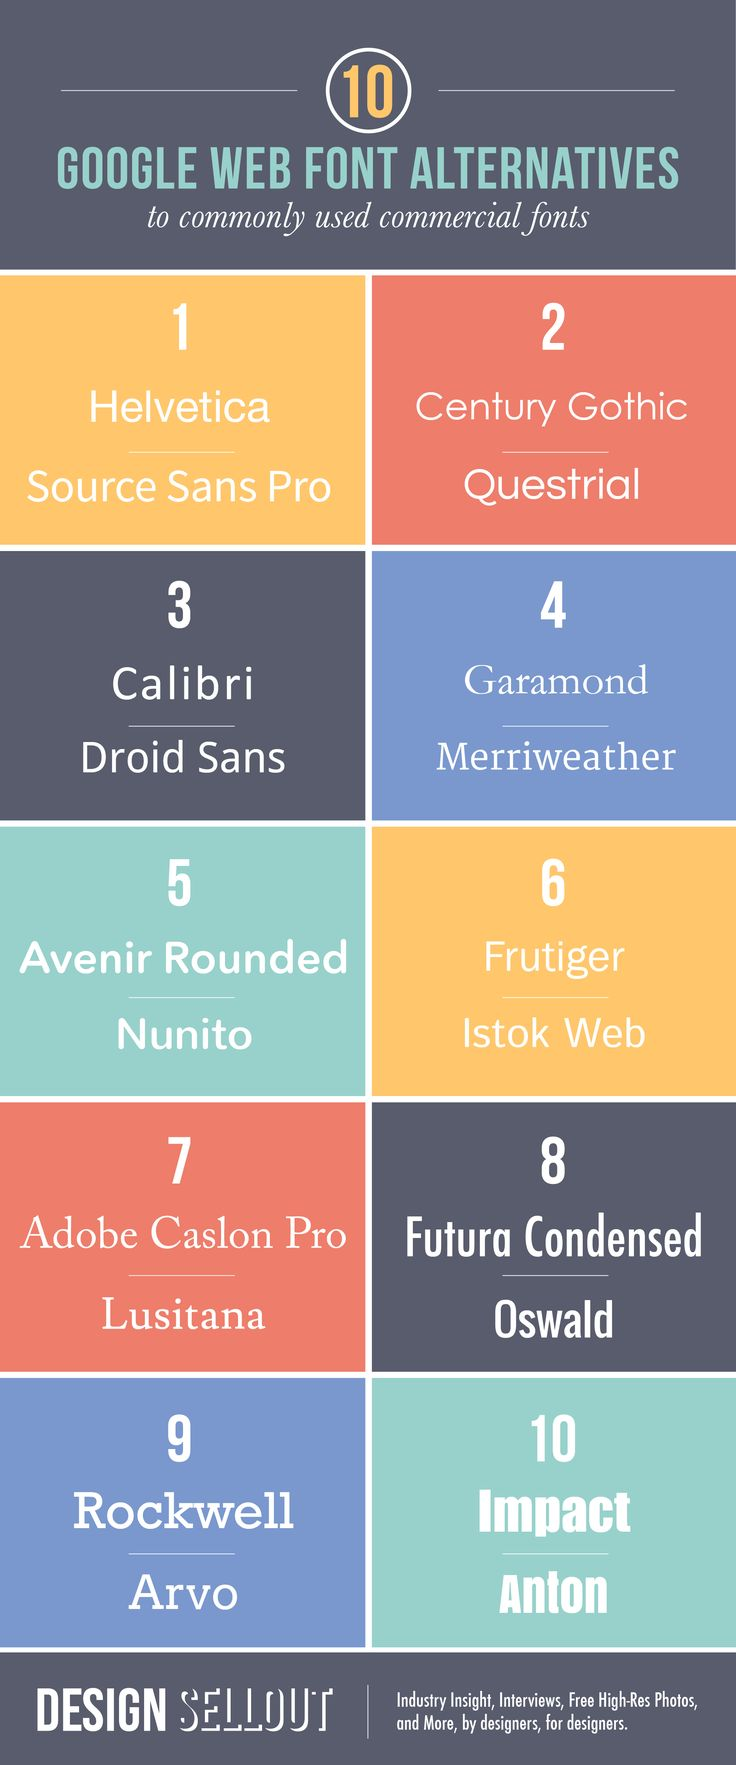 Ten of the most common commercial fonts have close Google Web Font alternatives: Helvetica, Frutiger, Century Gothic, Garamond, Impact, Caslon, Futura...